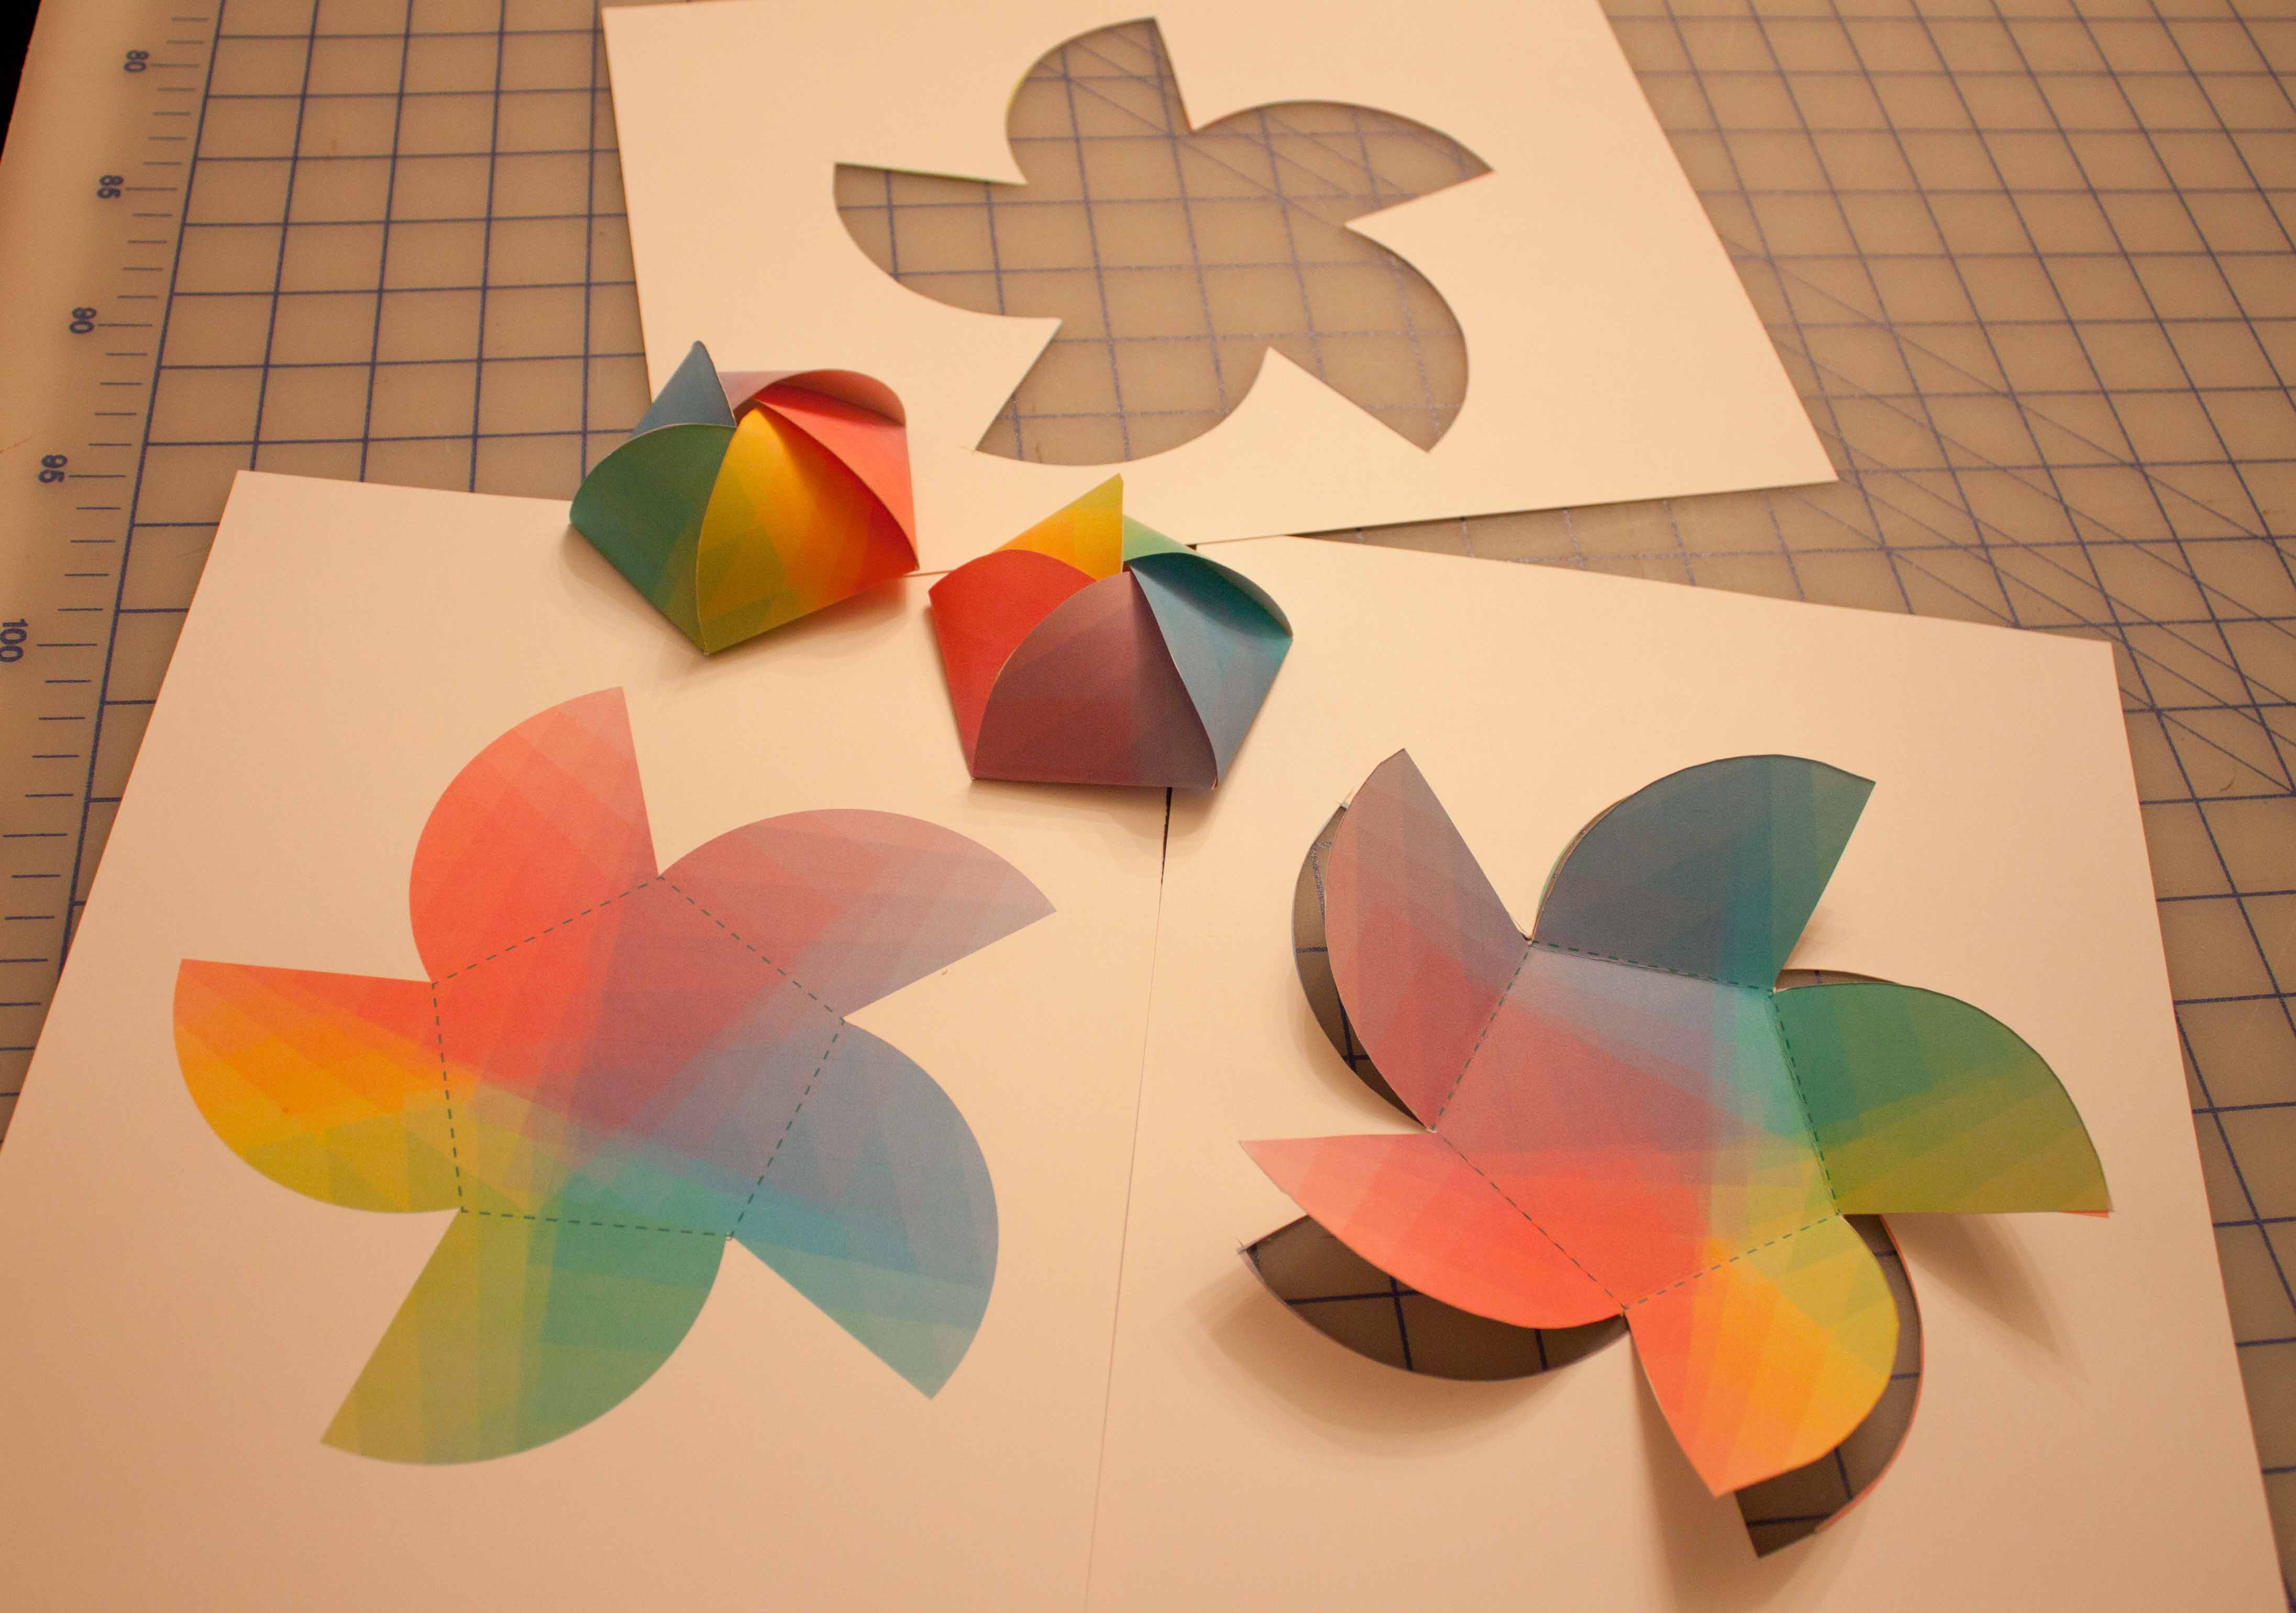 Boxes To Make Playful Bookbinding And Paper Works Tomoko Fuse Hexagon Box Instructions Puff